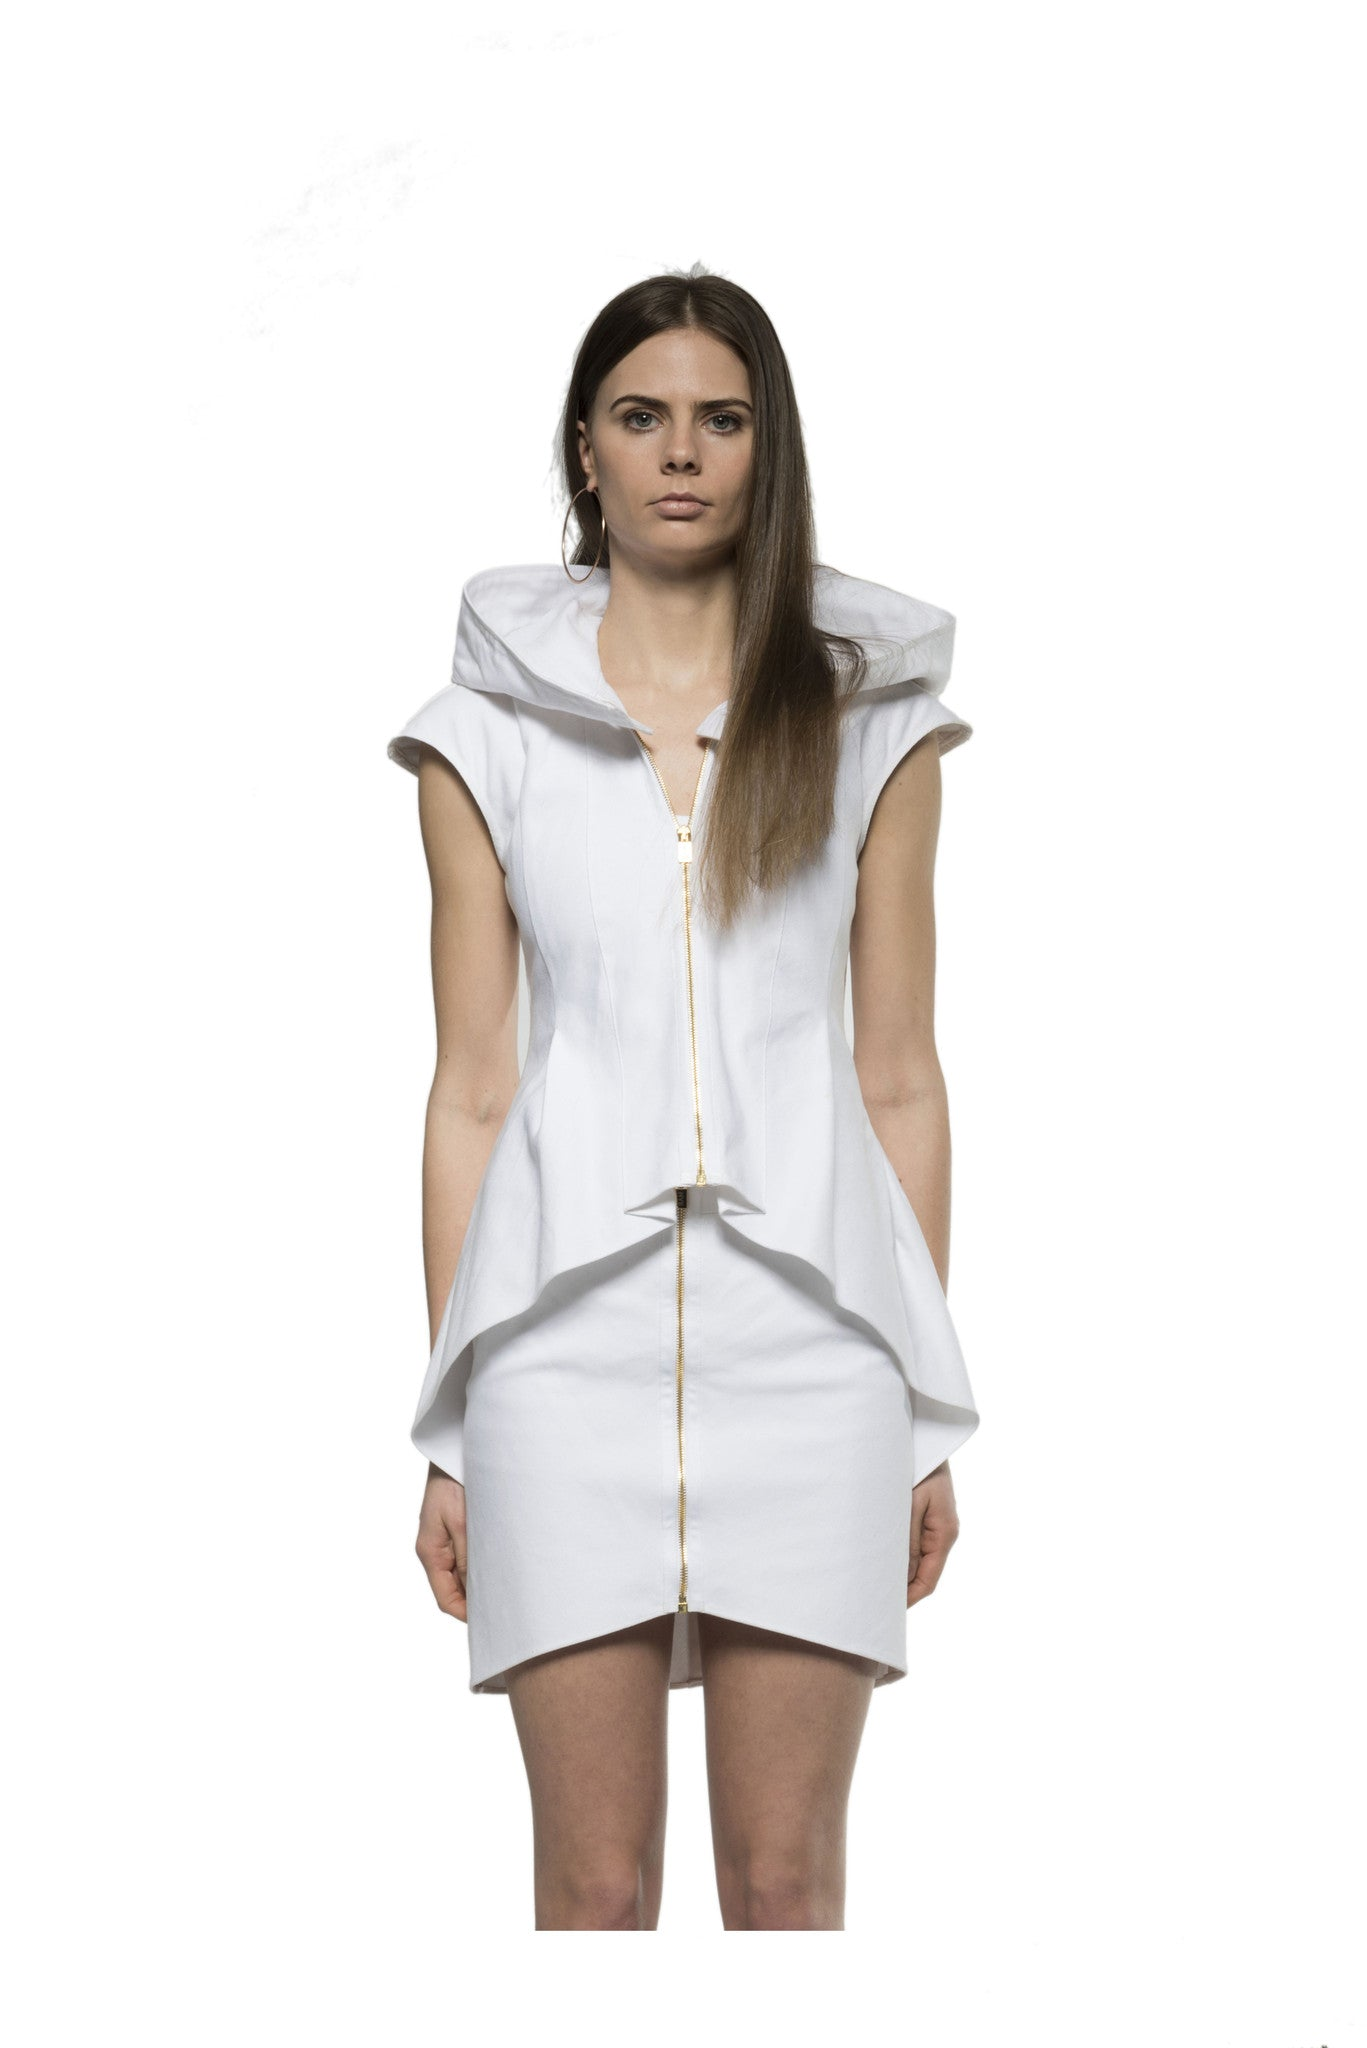 NVII - DEGOTOGA DRESS - NOMAD VII X ANNE BOWEN